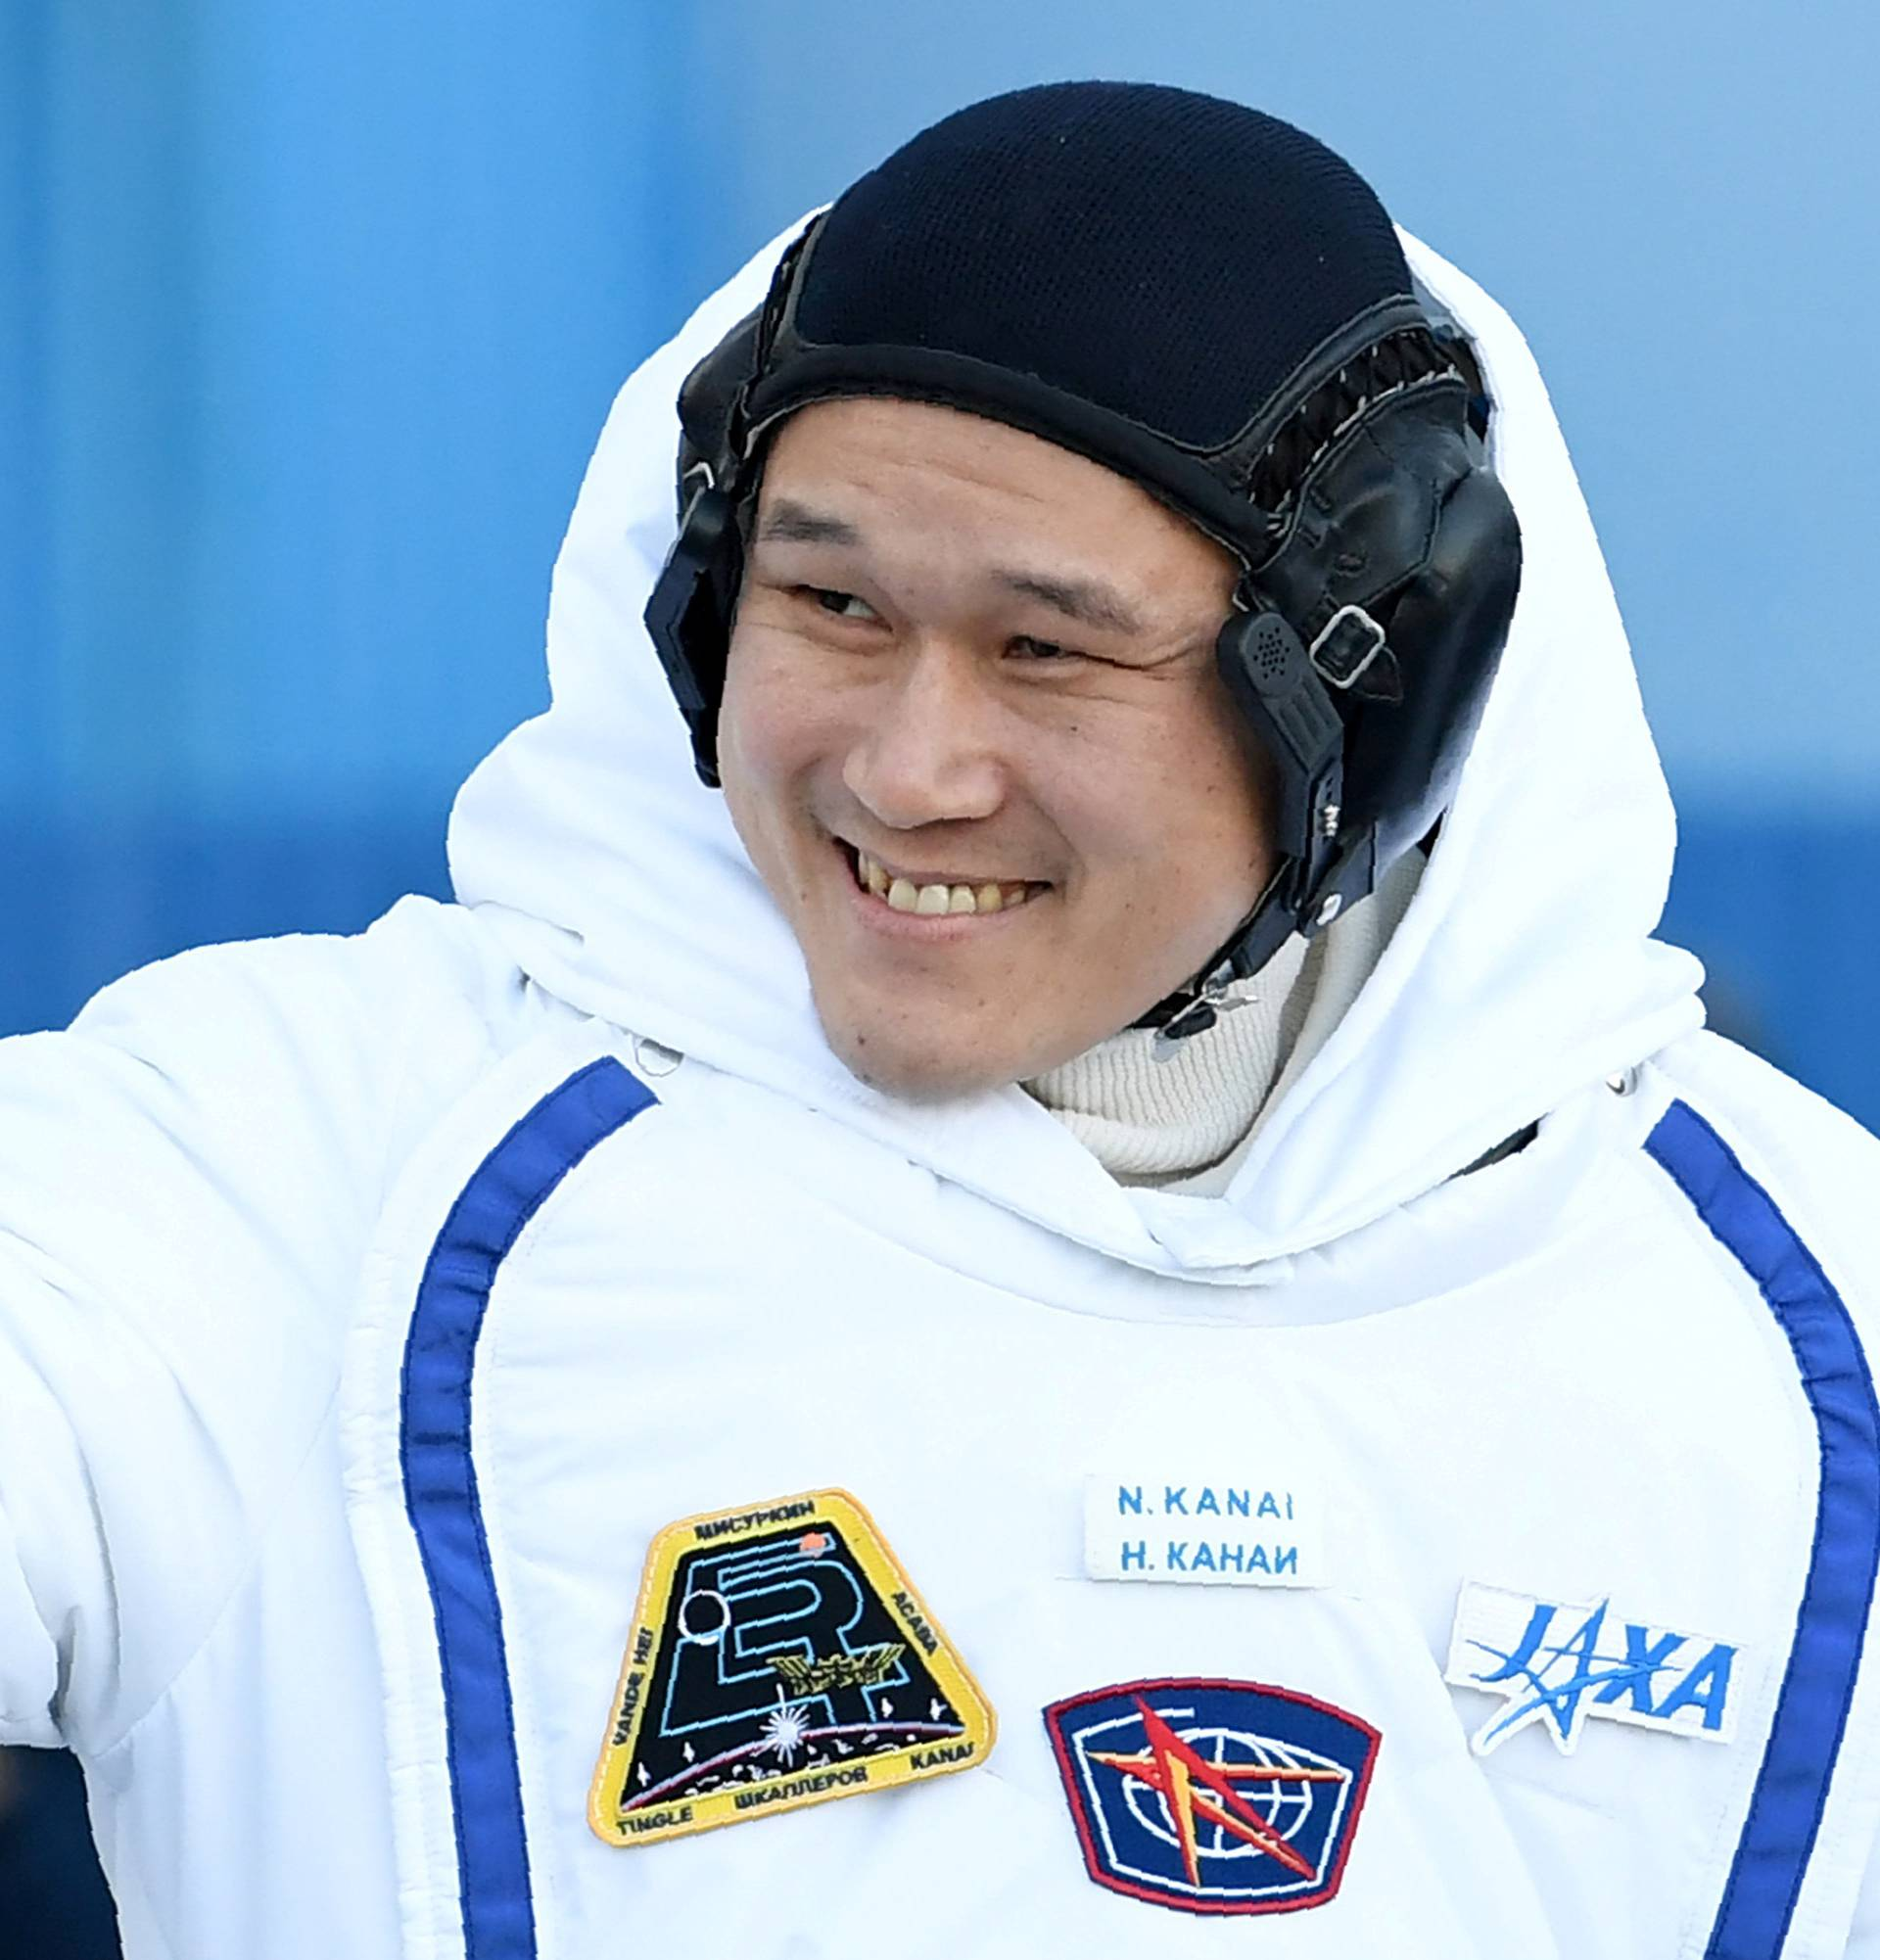 FILE PHOTO: Norishige Kanai of the Japan Aerospace Exploration Agency (JAXA) during the send-off ceremony after checking their space suits before the launch of the Soyuz MS-07 spacecraft at the Baikonur cosmodrome